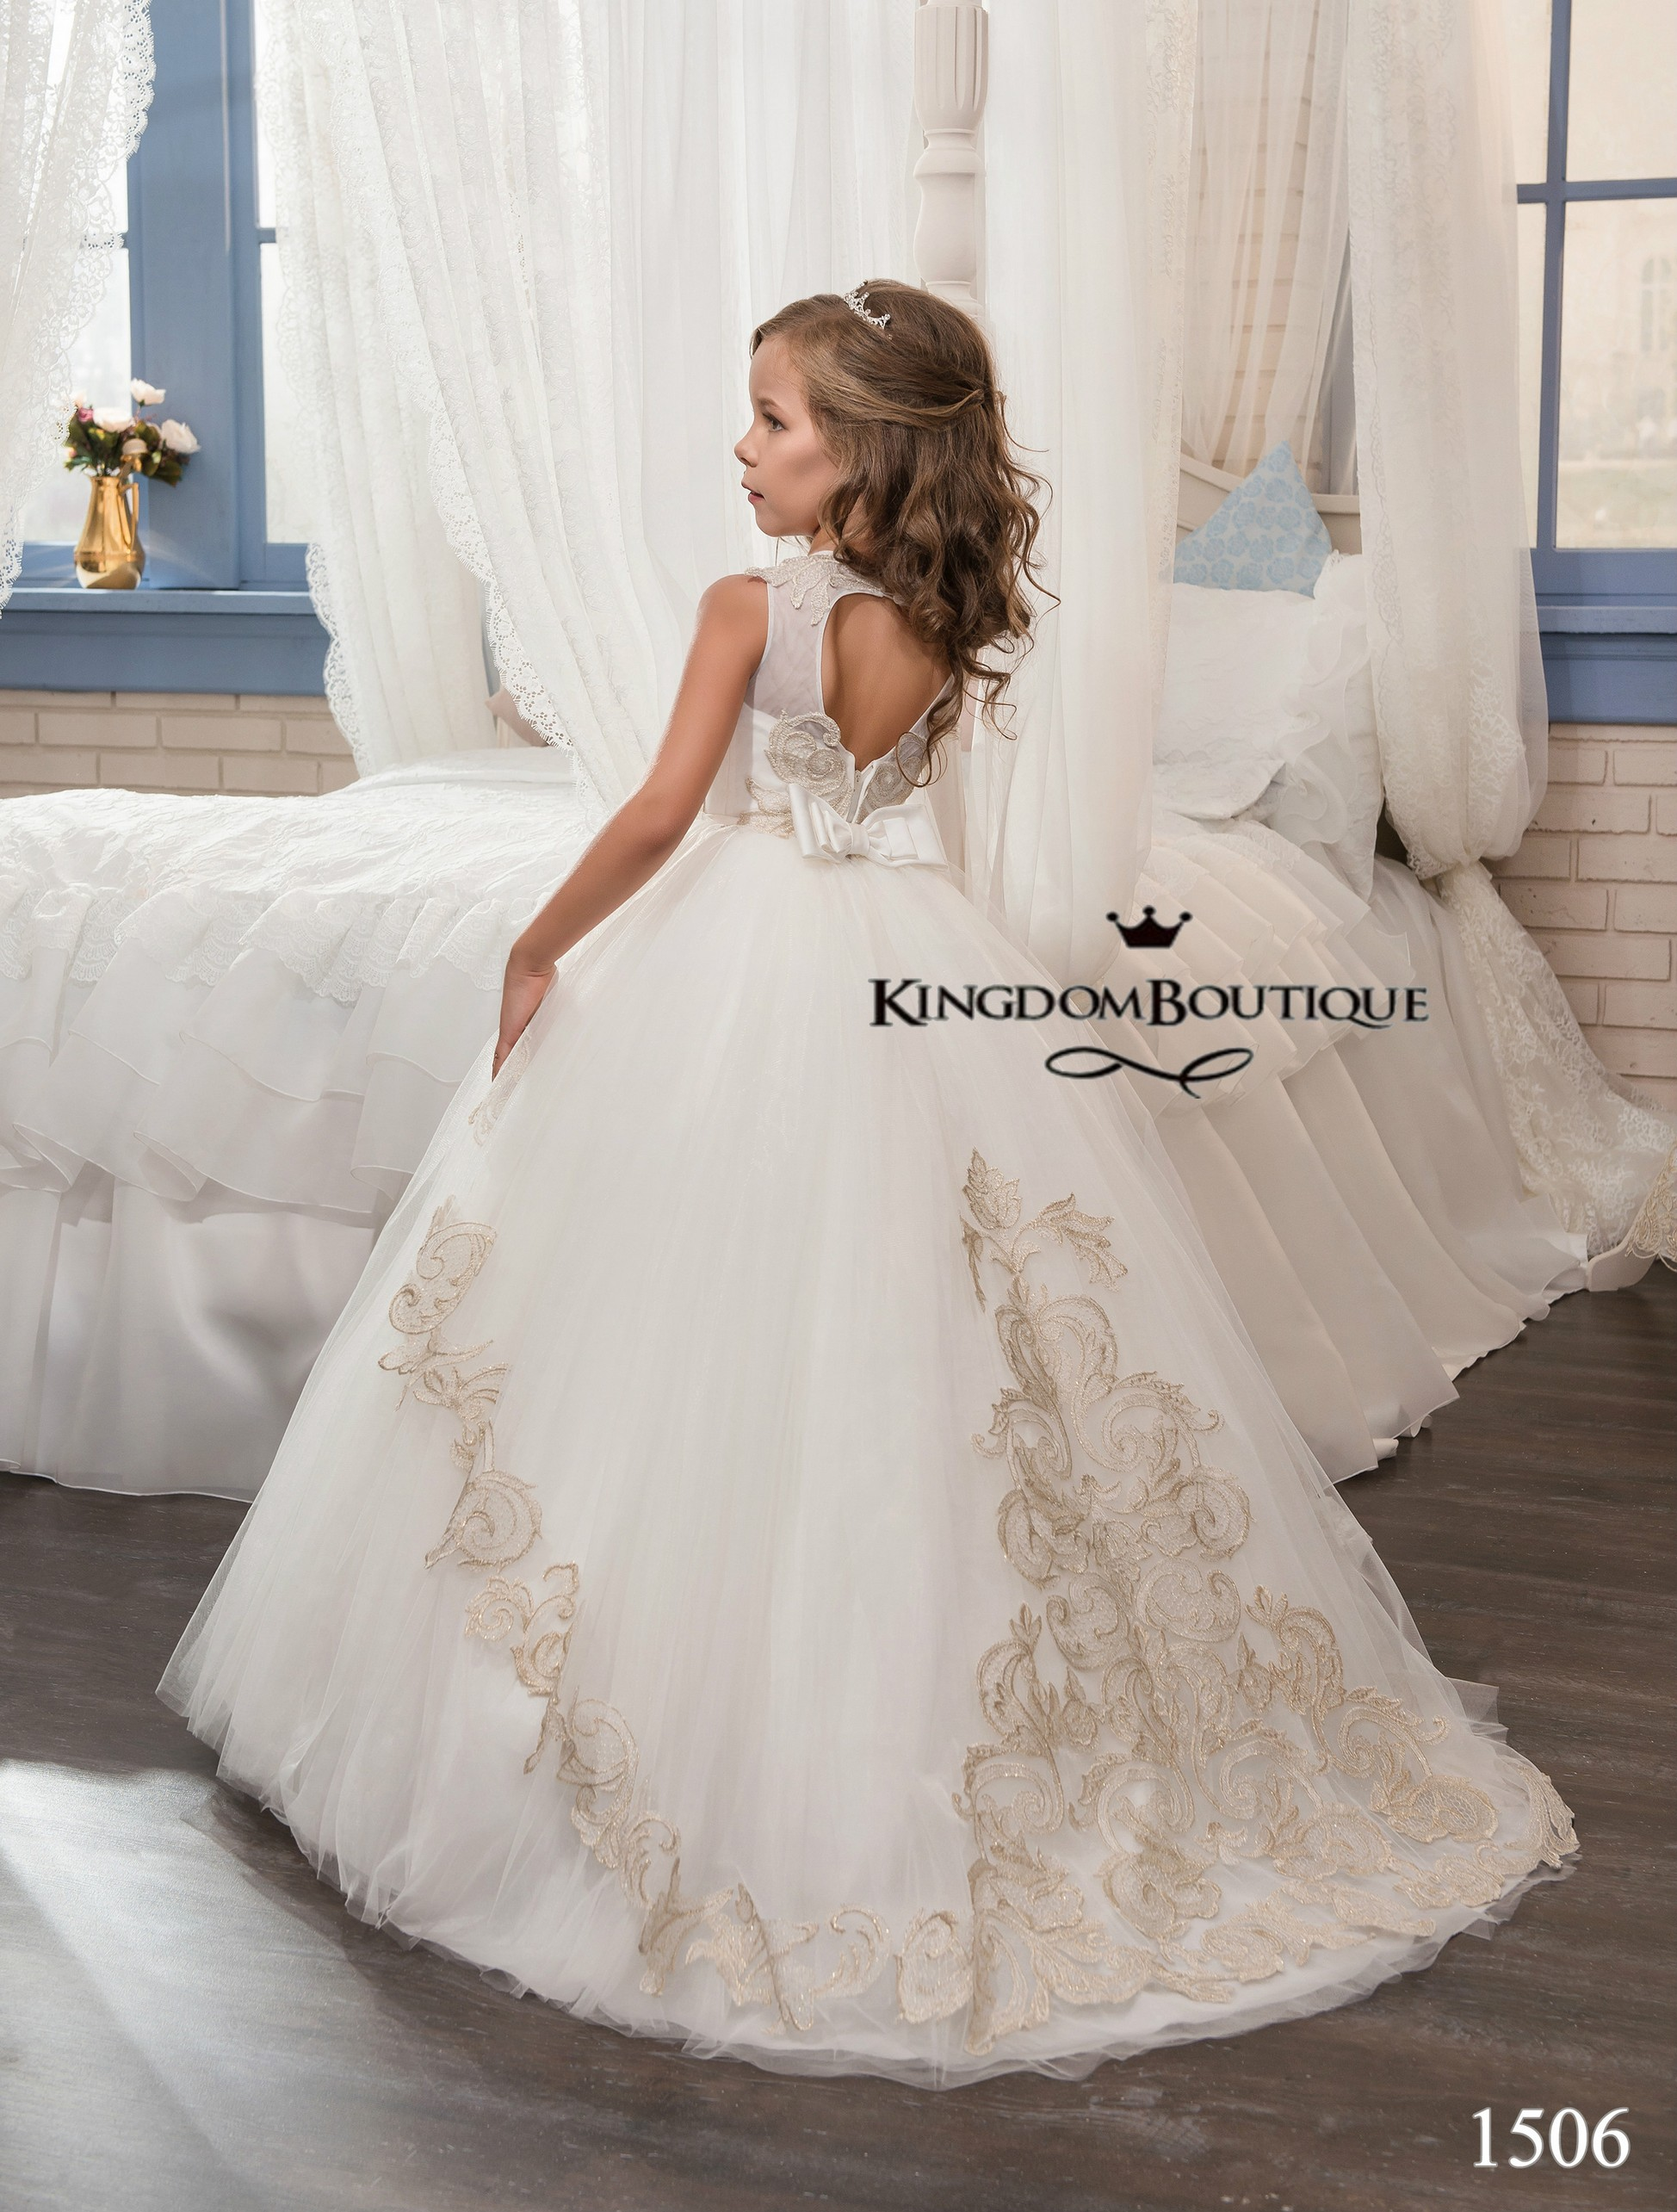 Flower Girl Dress 16 1506 Kingdom Boutique